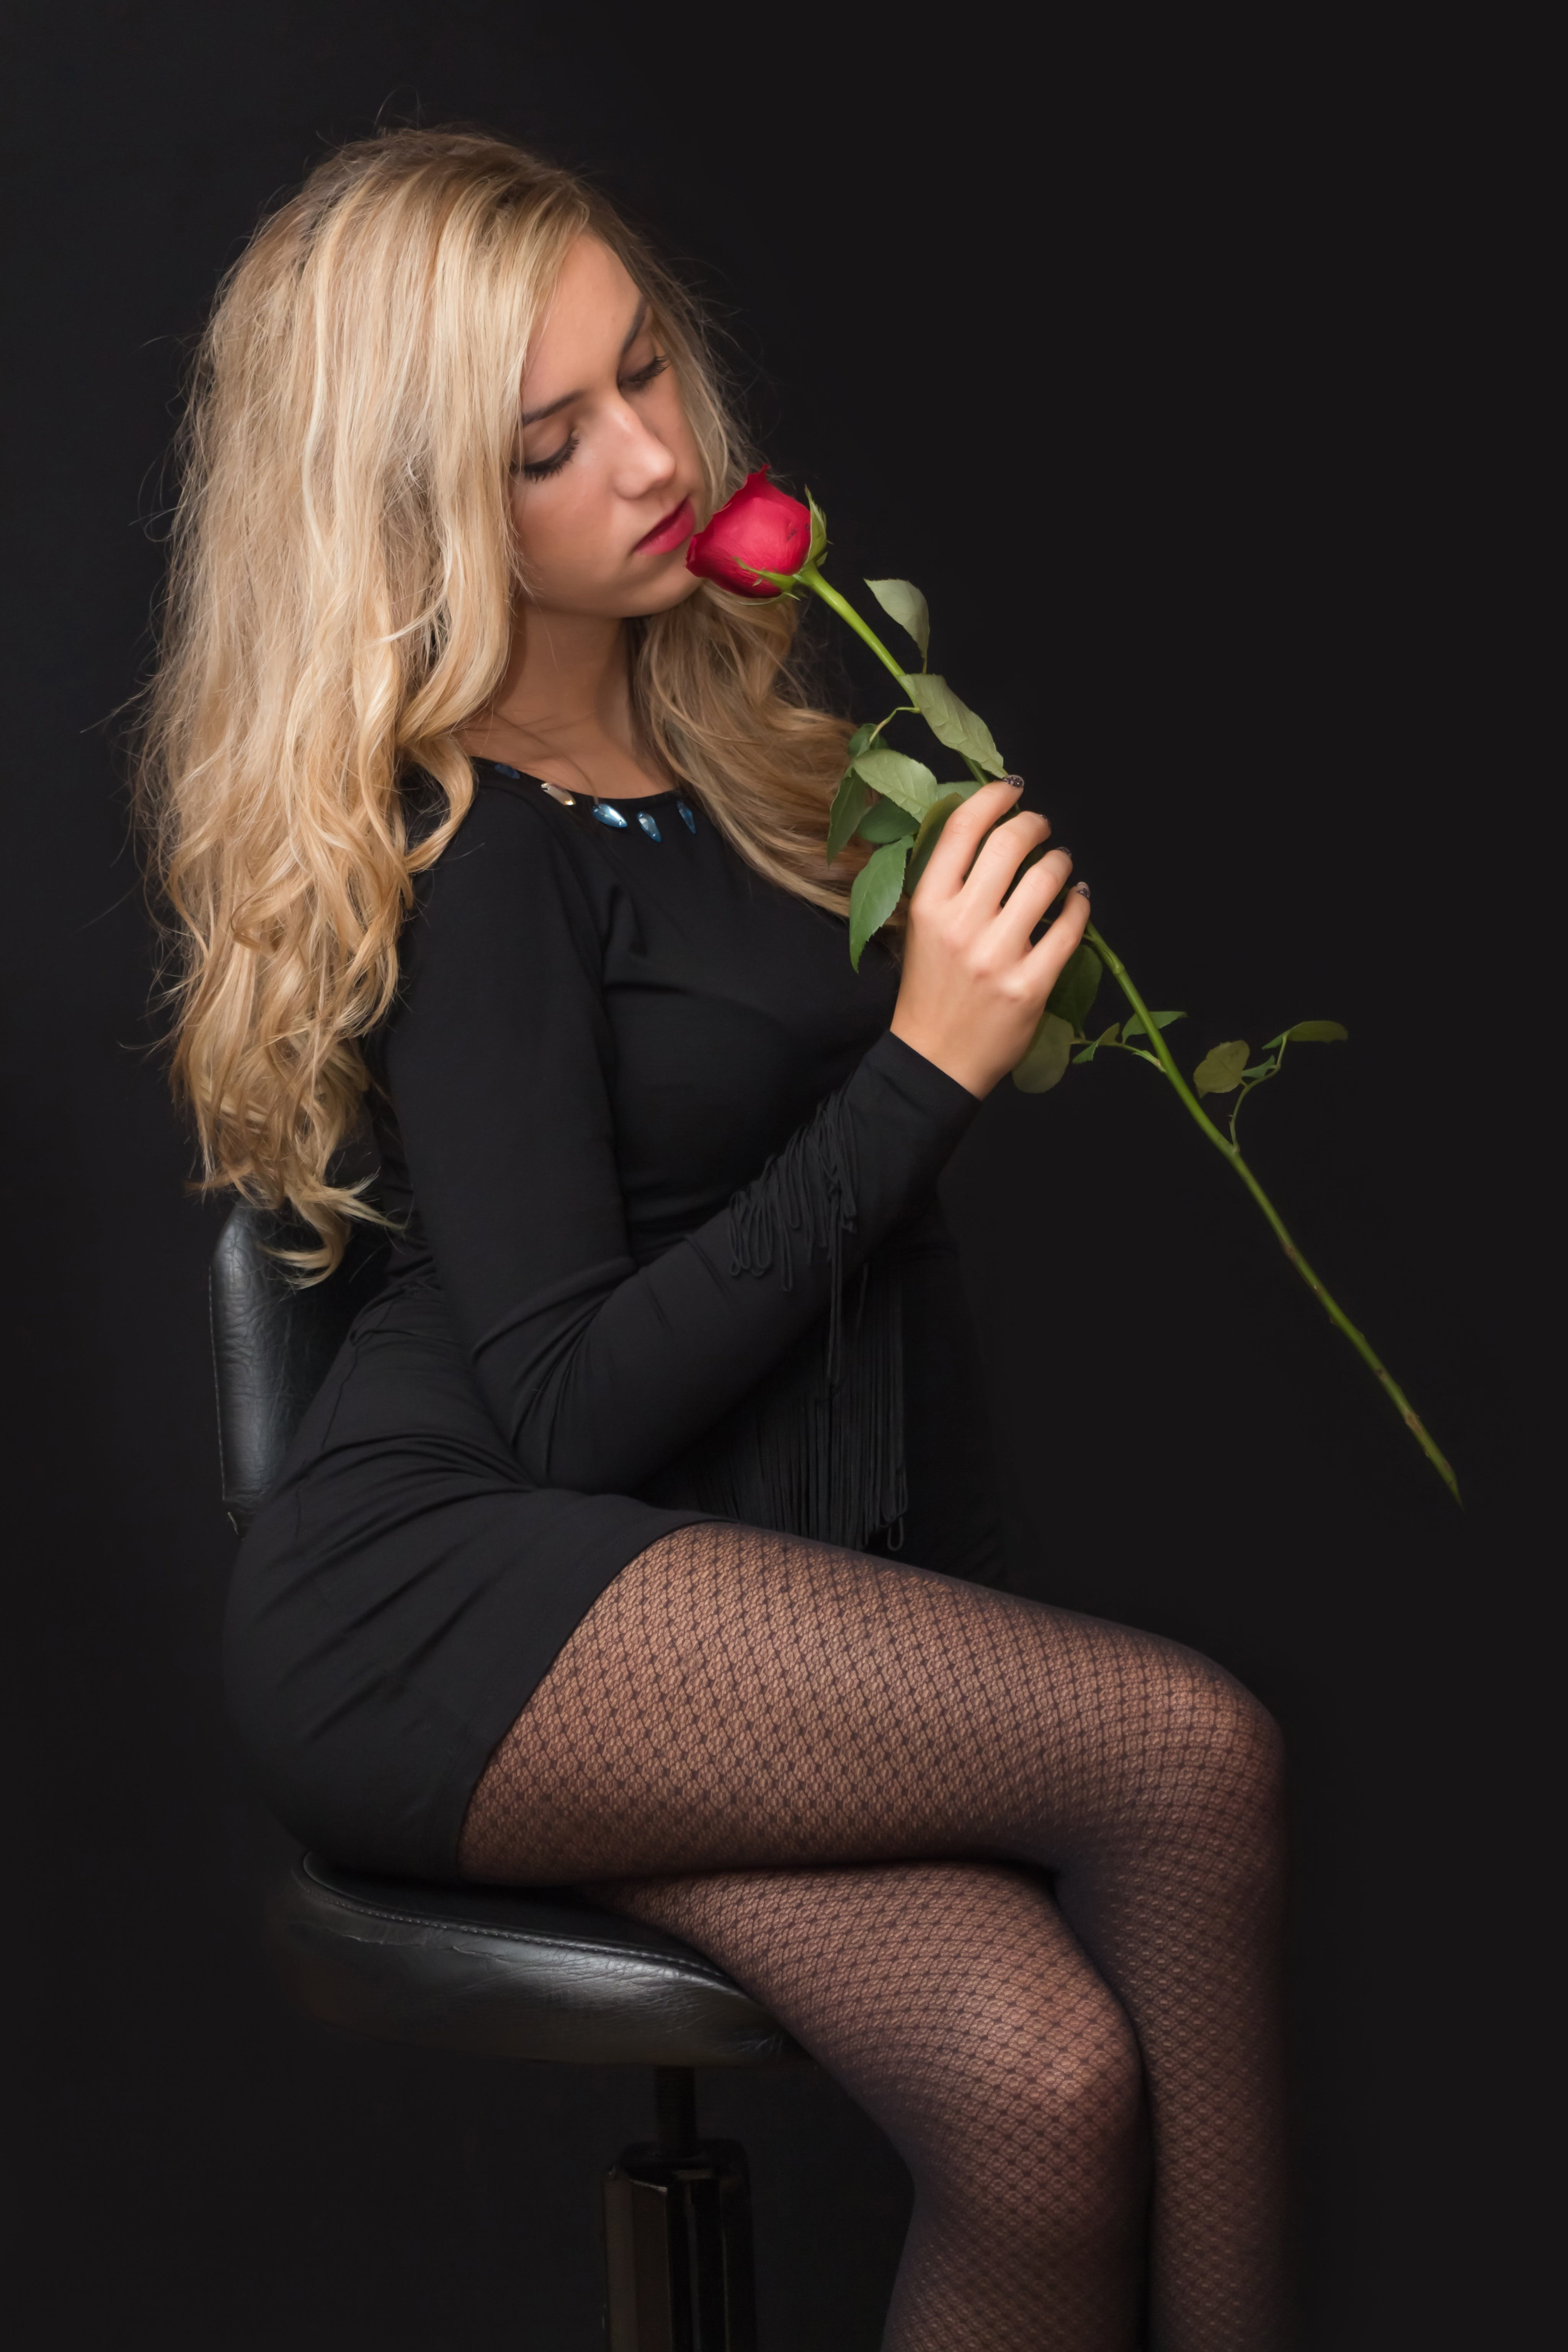 Woman in Black Dress Holding Red Rose